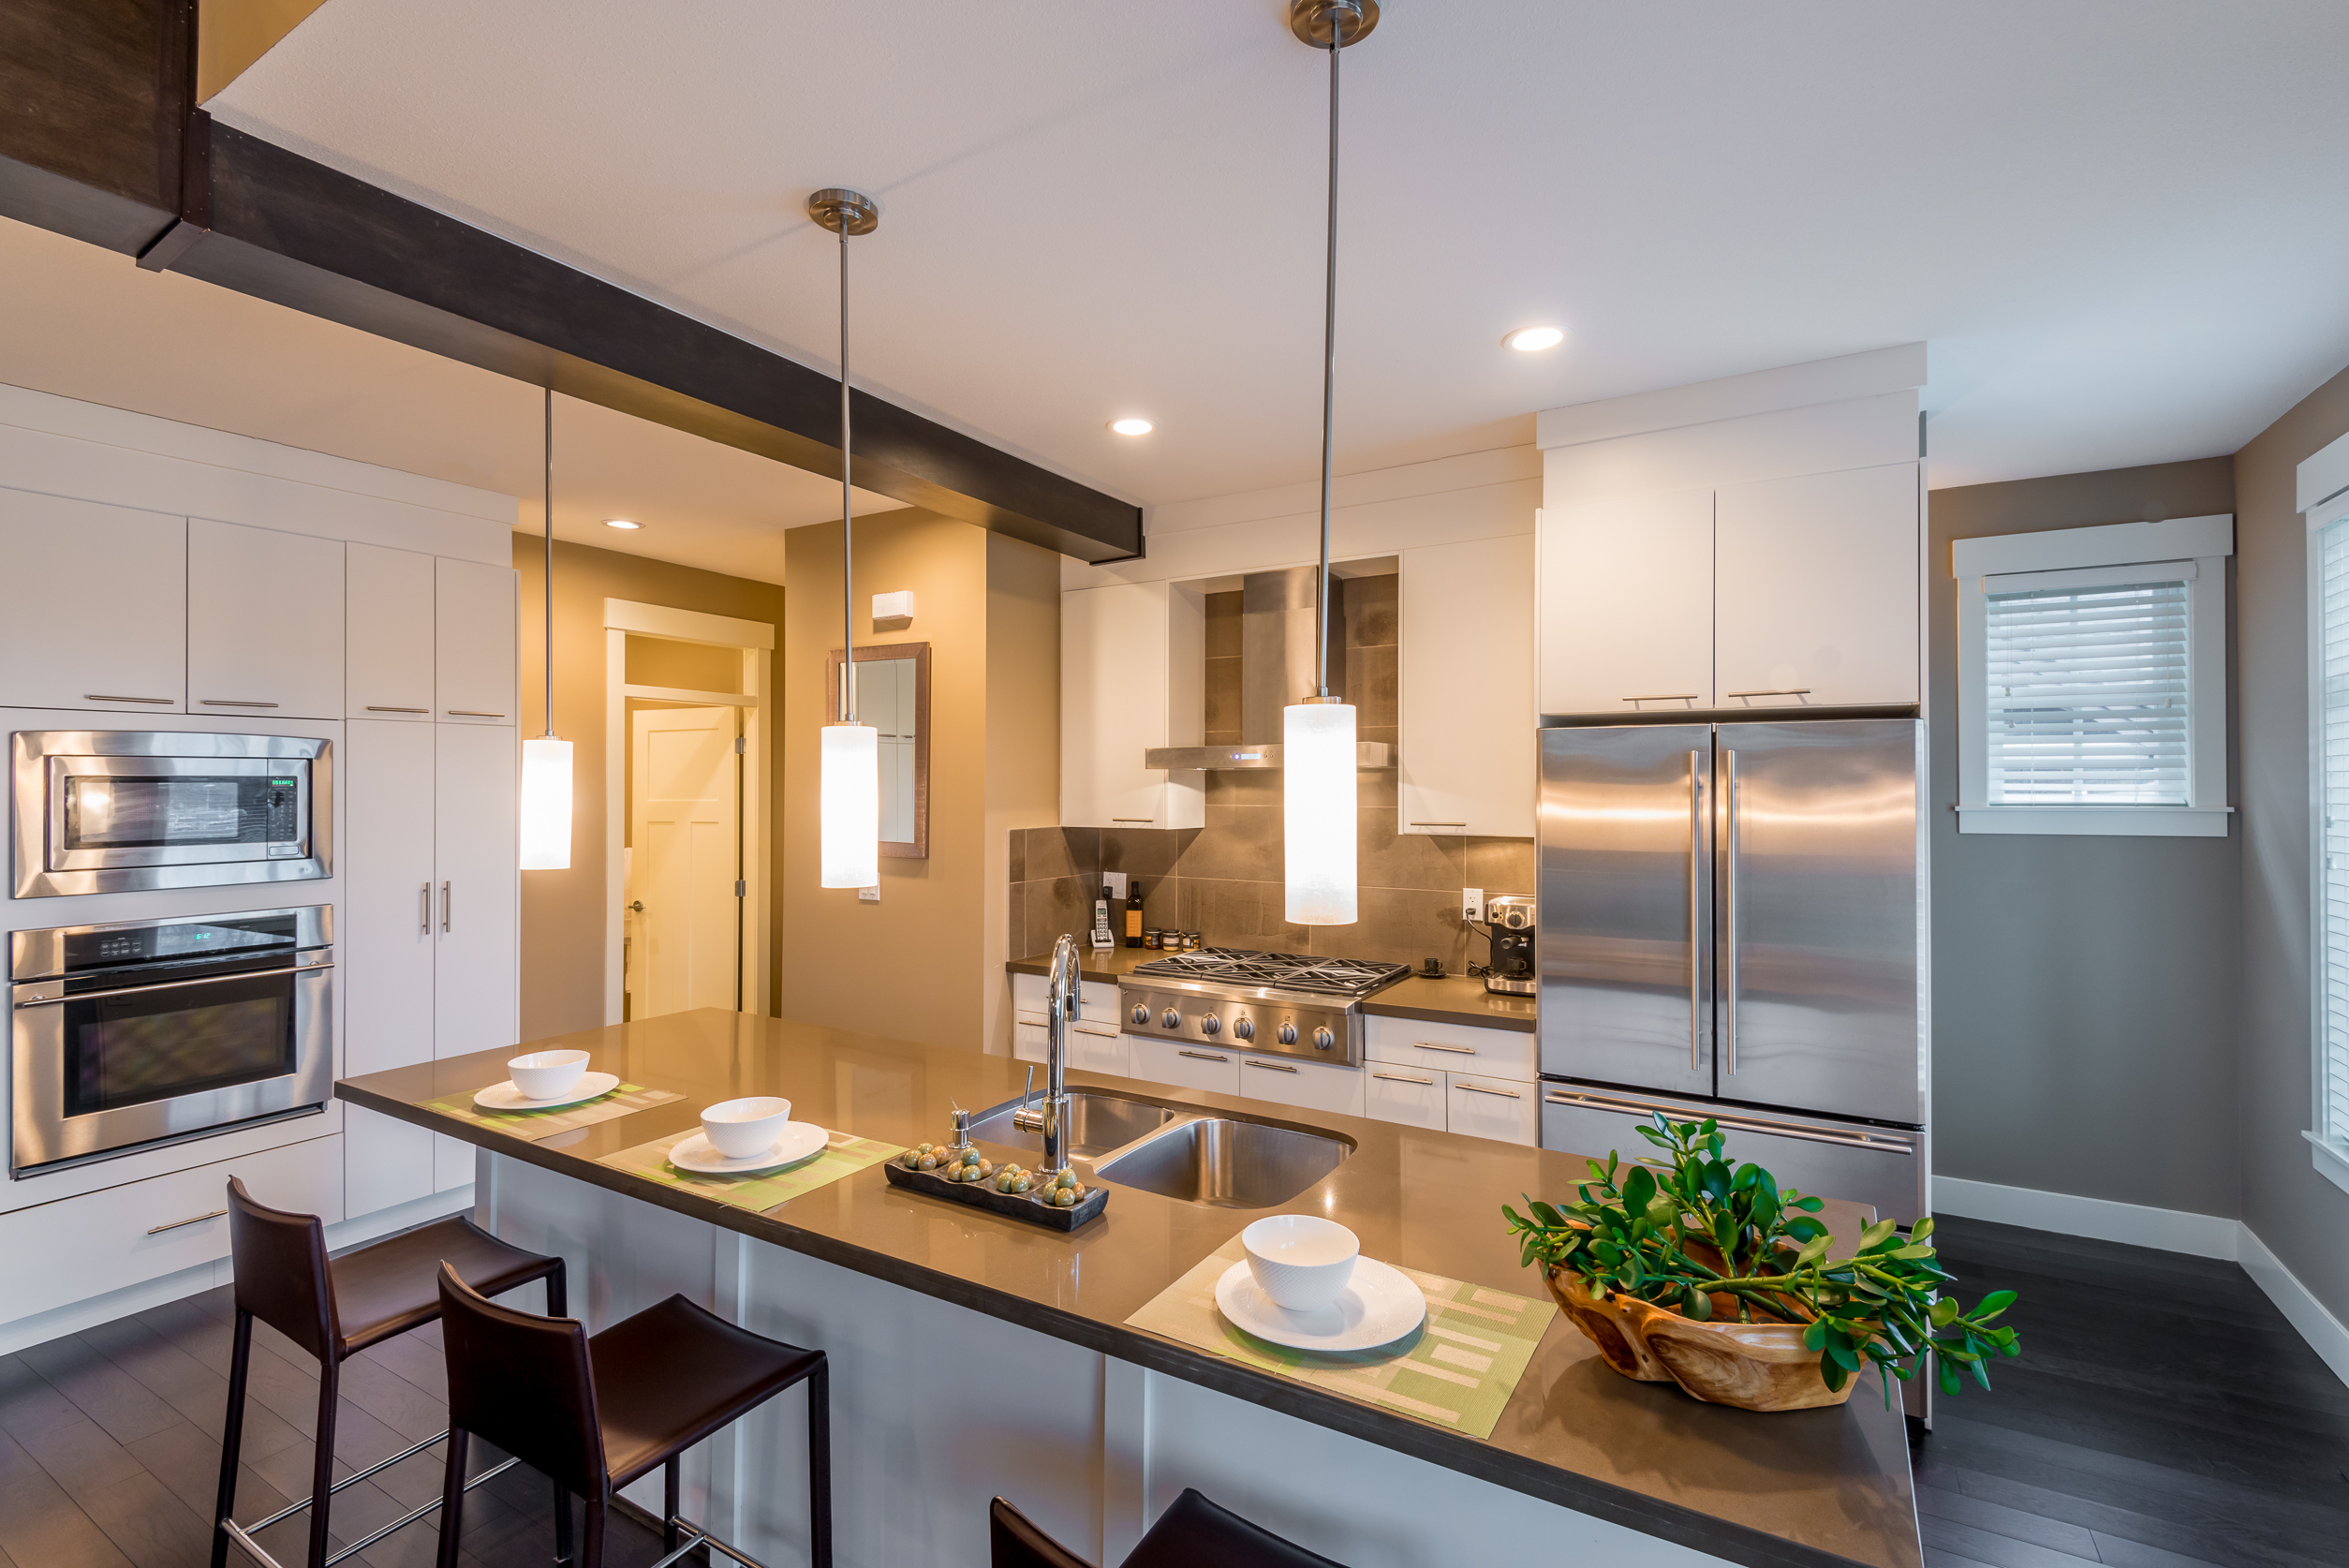 Modern, bright, clean, kitchen interior with stainless steel appliances in a luxury house